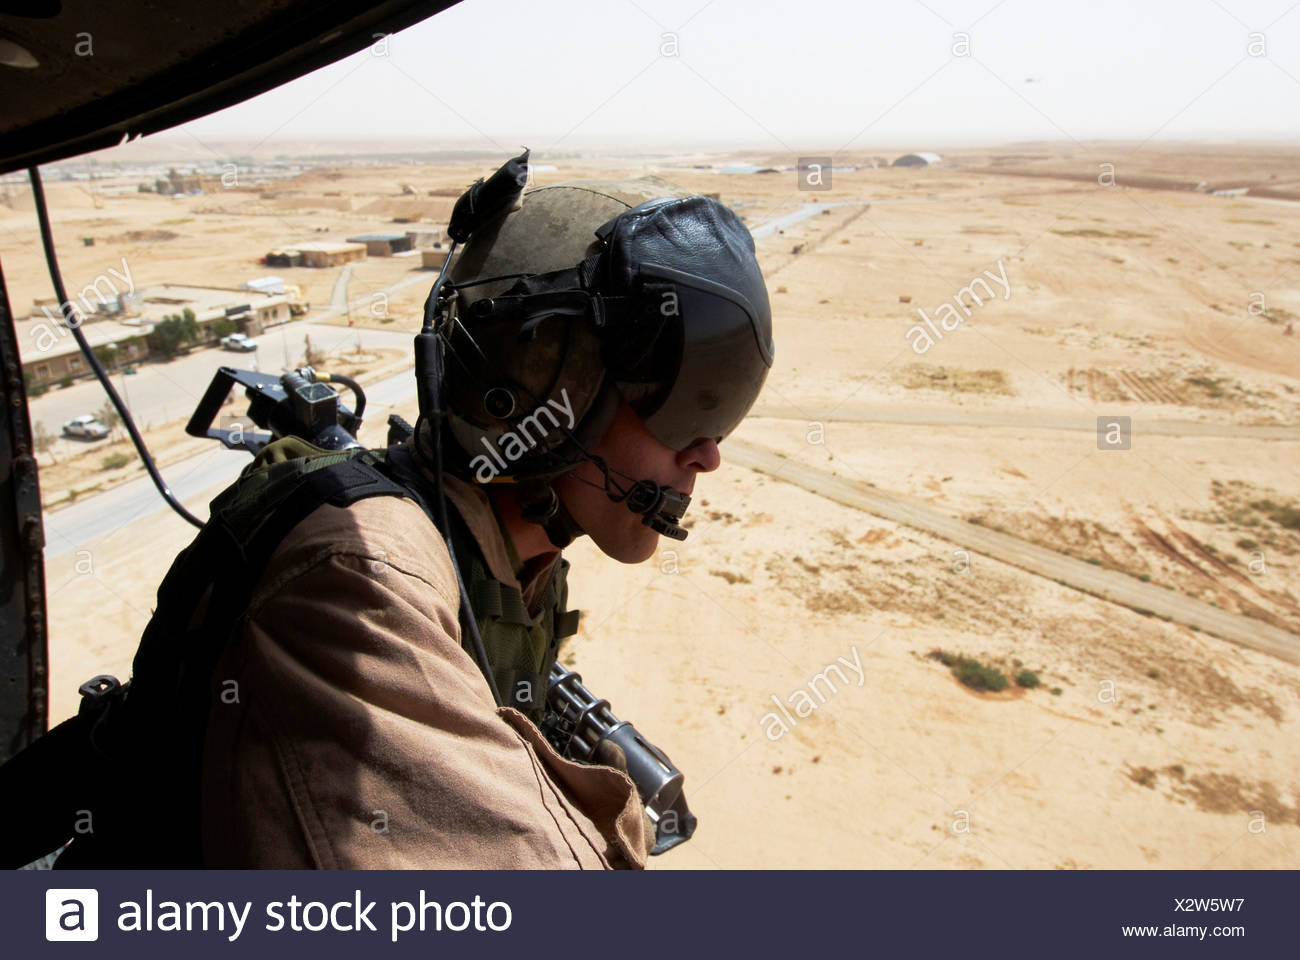 US Marine flight crew chief scans desert below Marine Corps UH-1N utility helicopter fitted weapons during combat operation Stock Photo